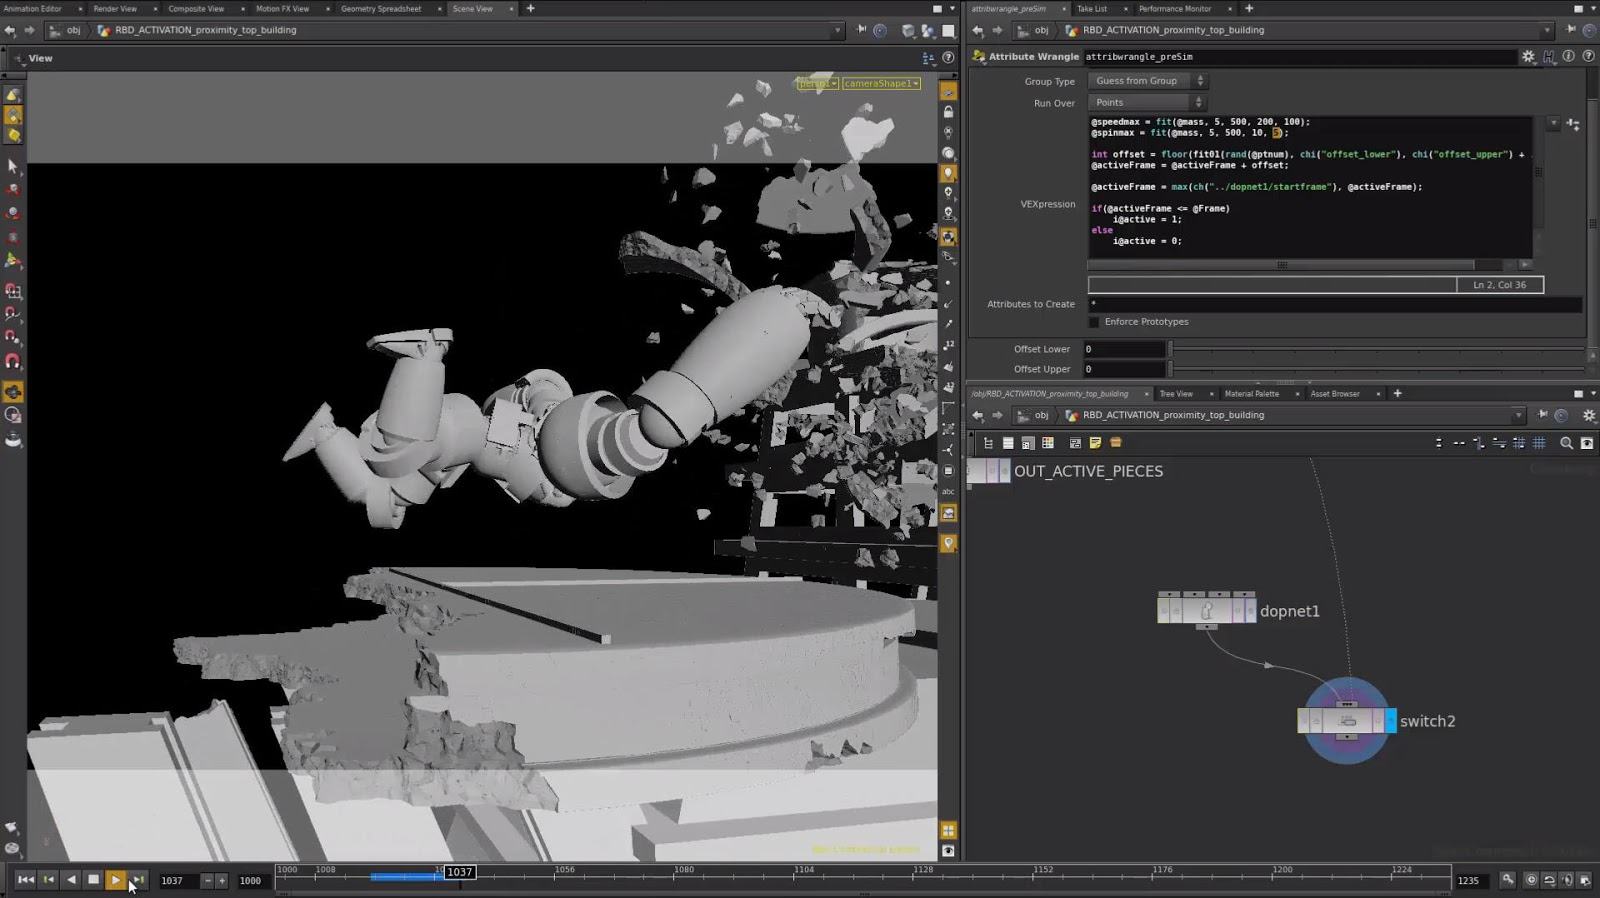 Mastering Destruction in Houdini with Keith Kamholz - CG Master